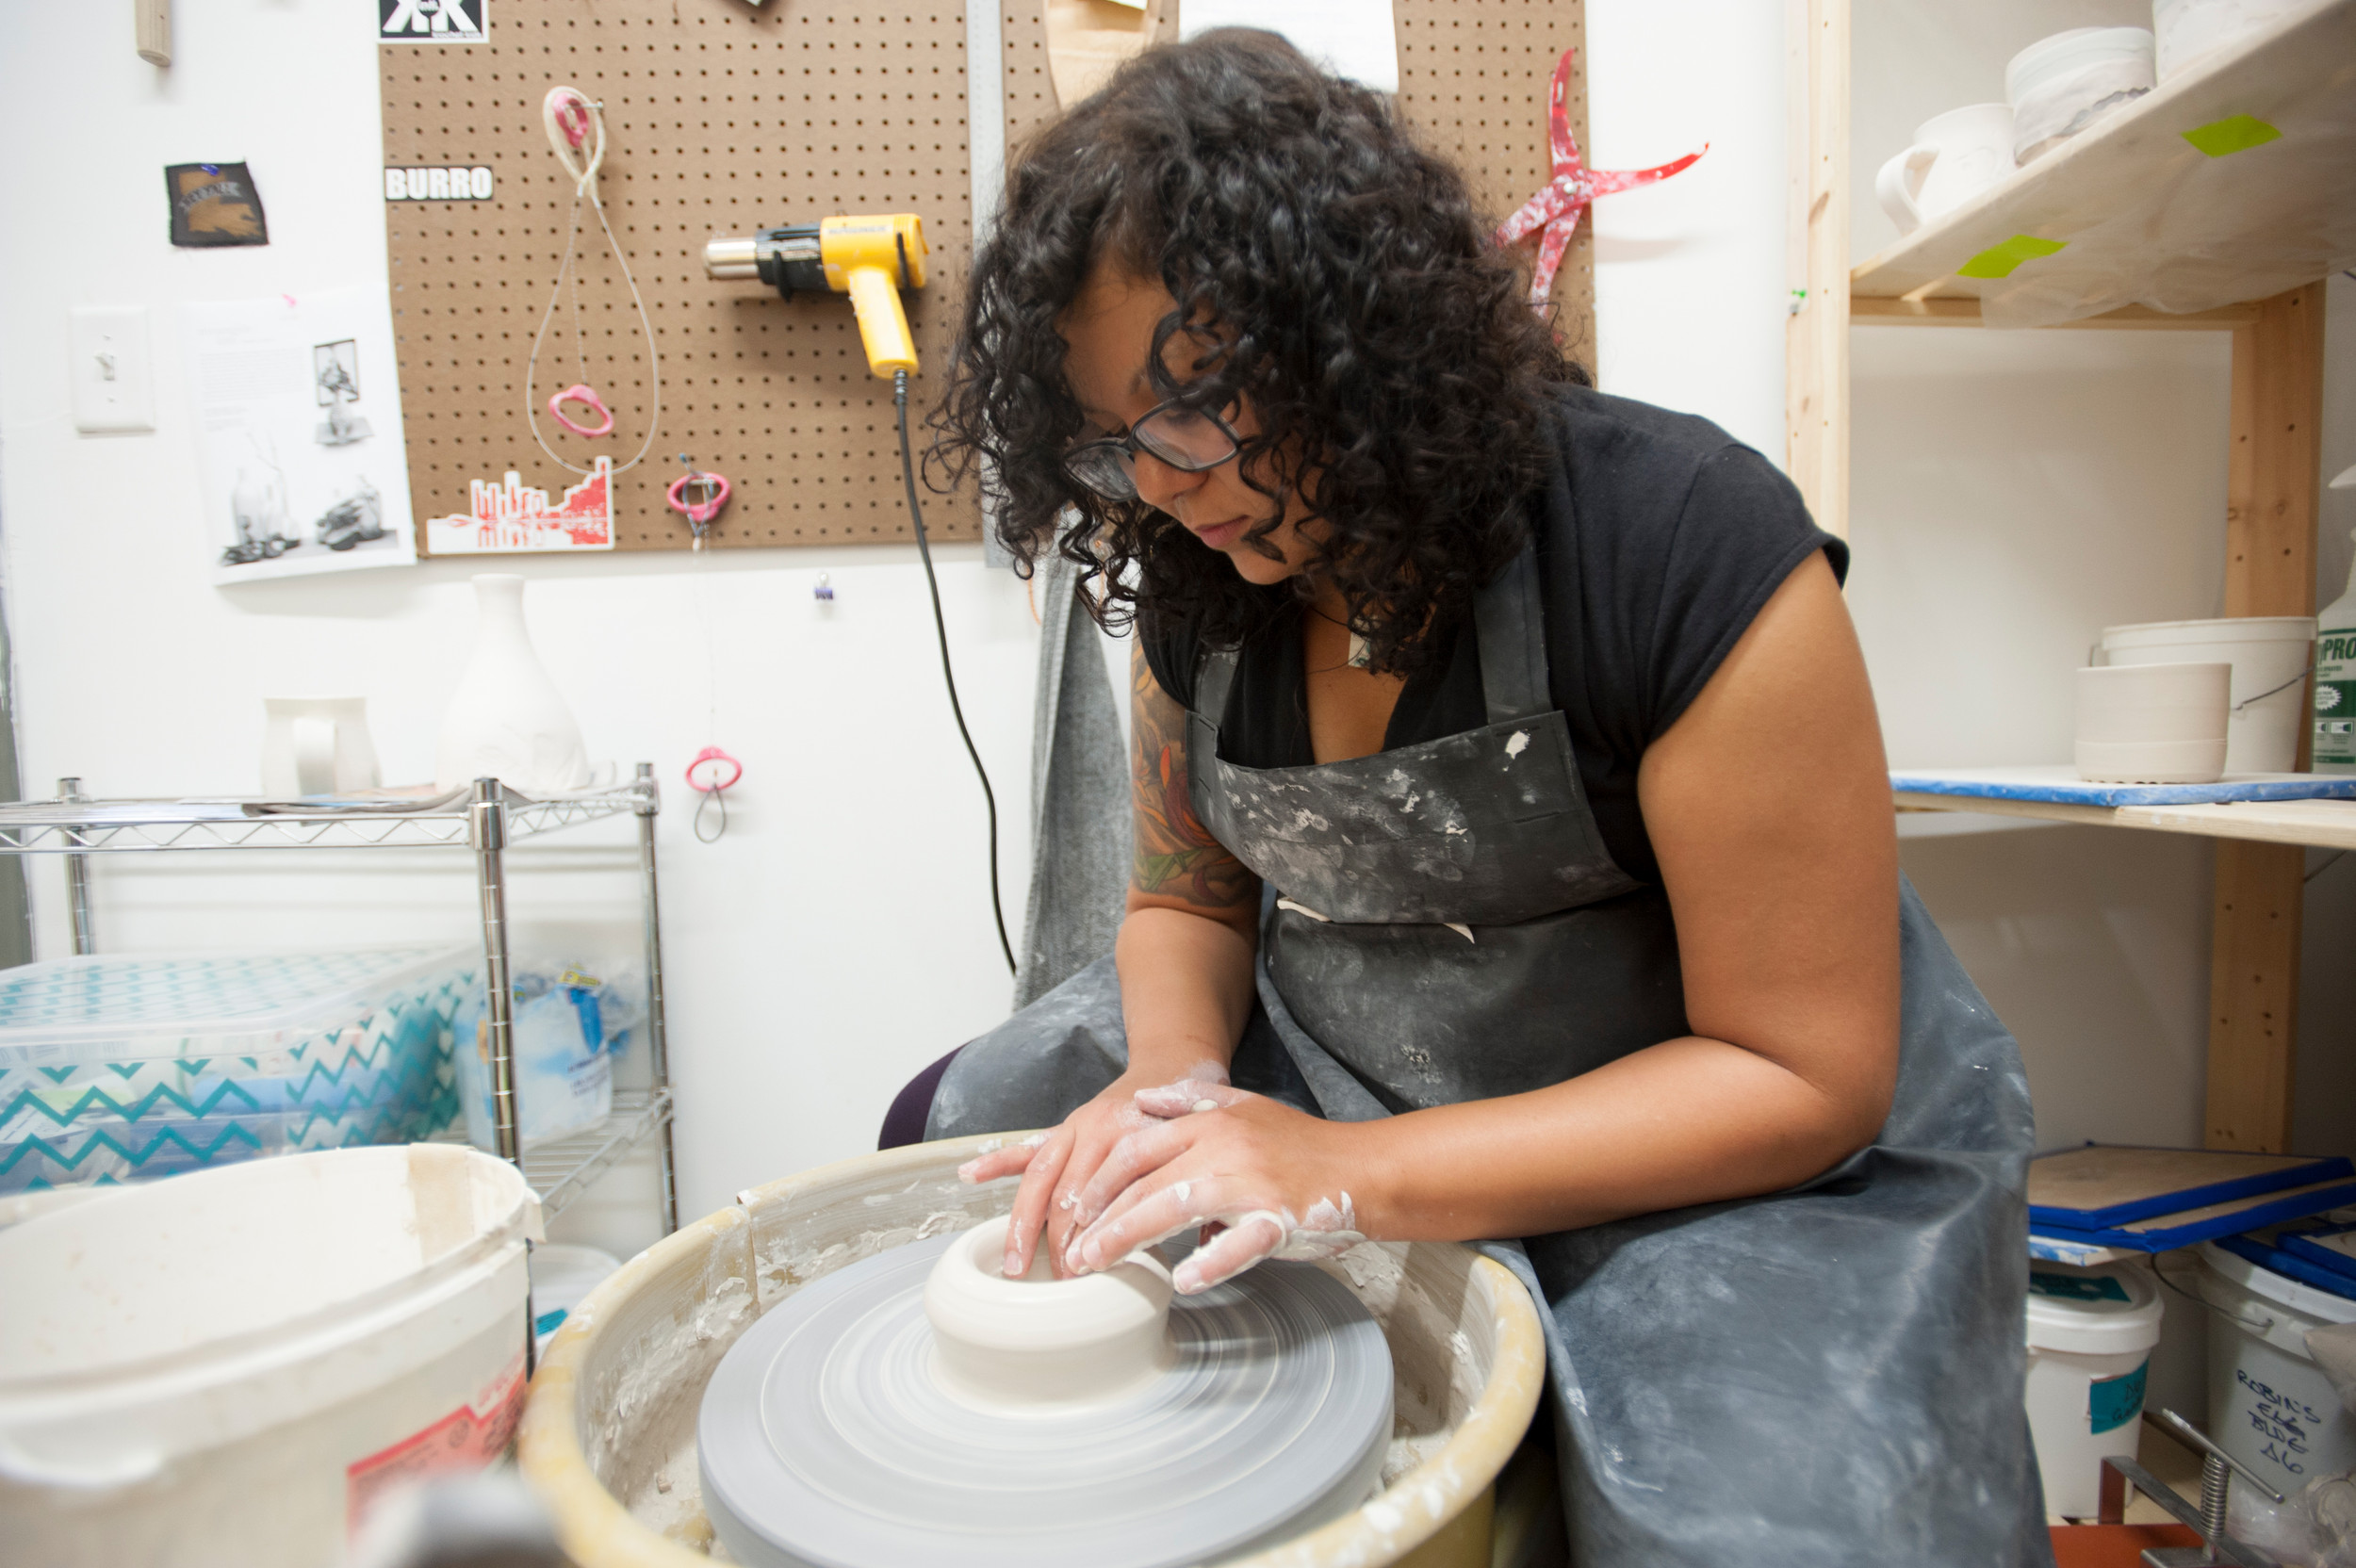 Koula Redmond prepares a ceramic art piece for Free Art Friday.